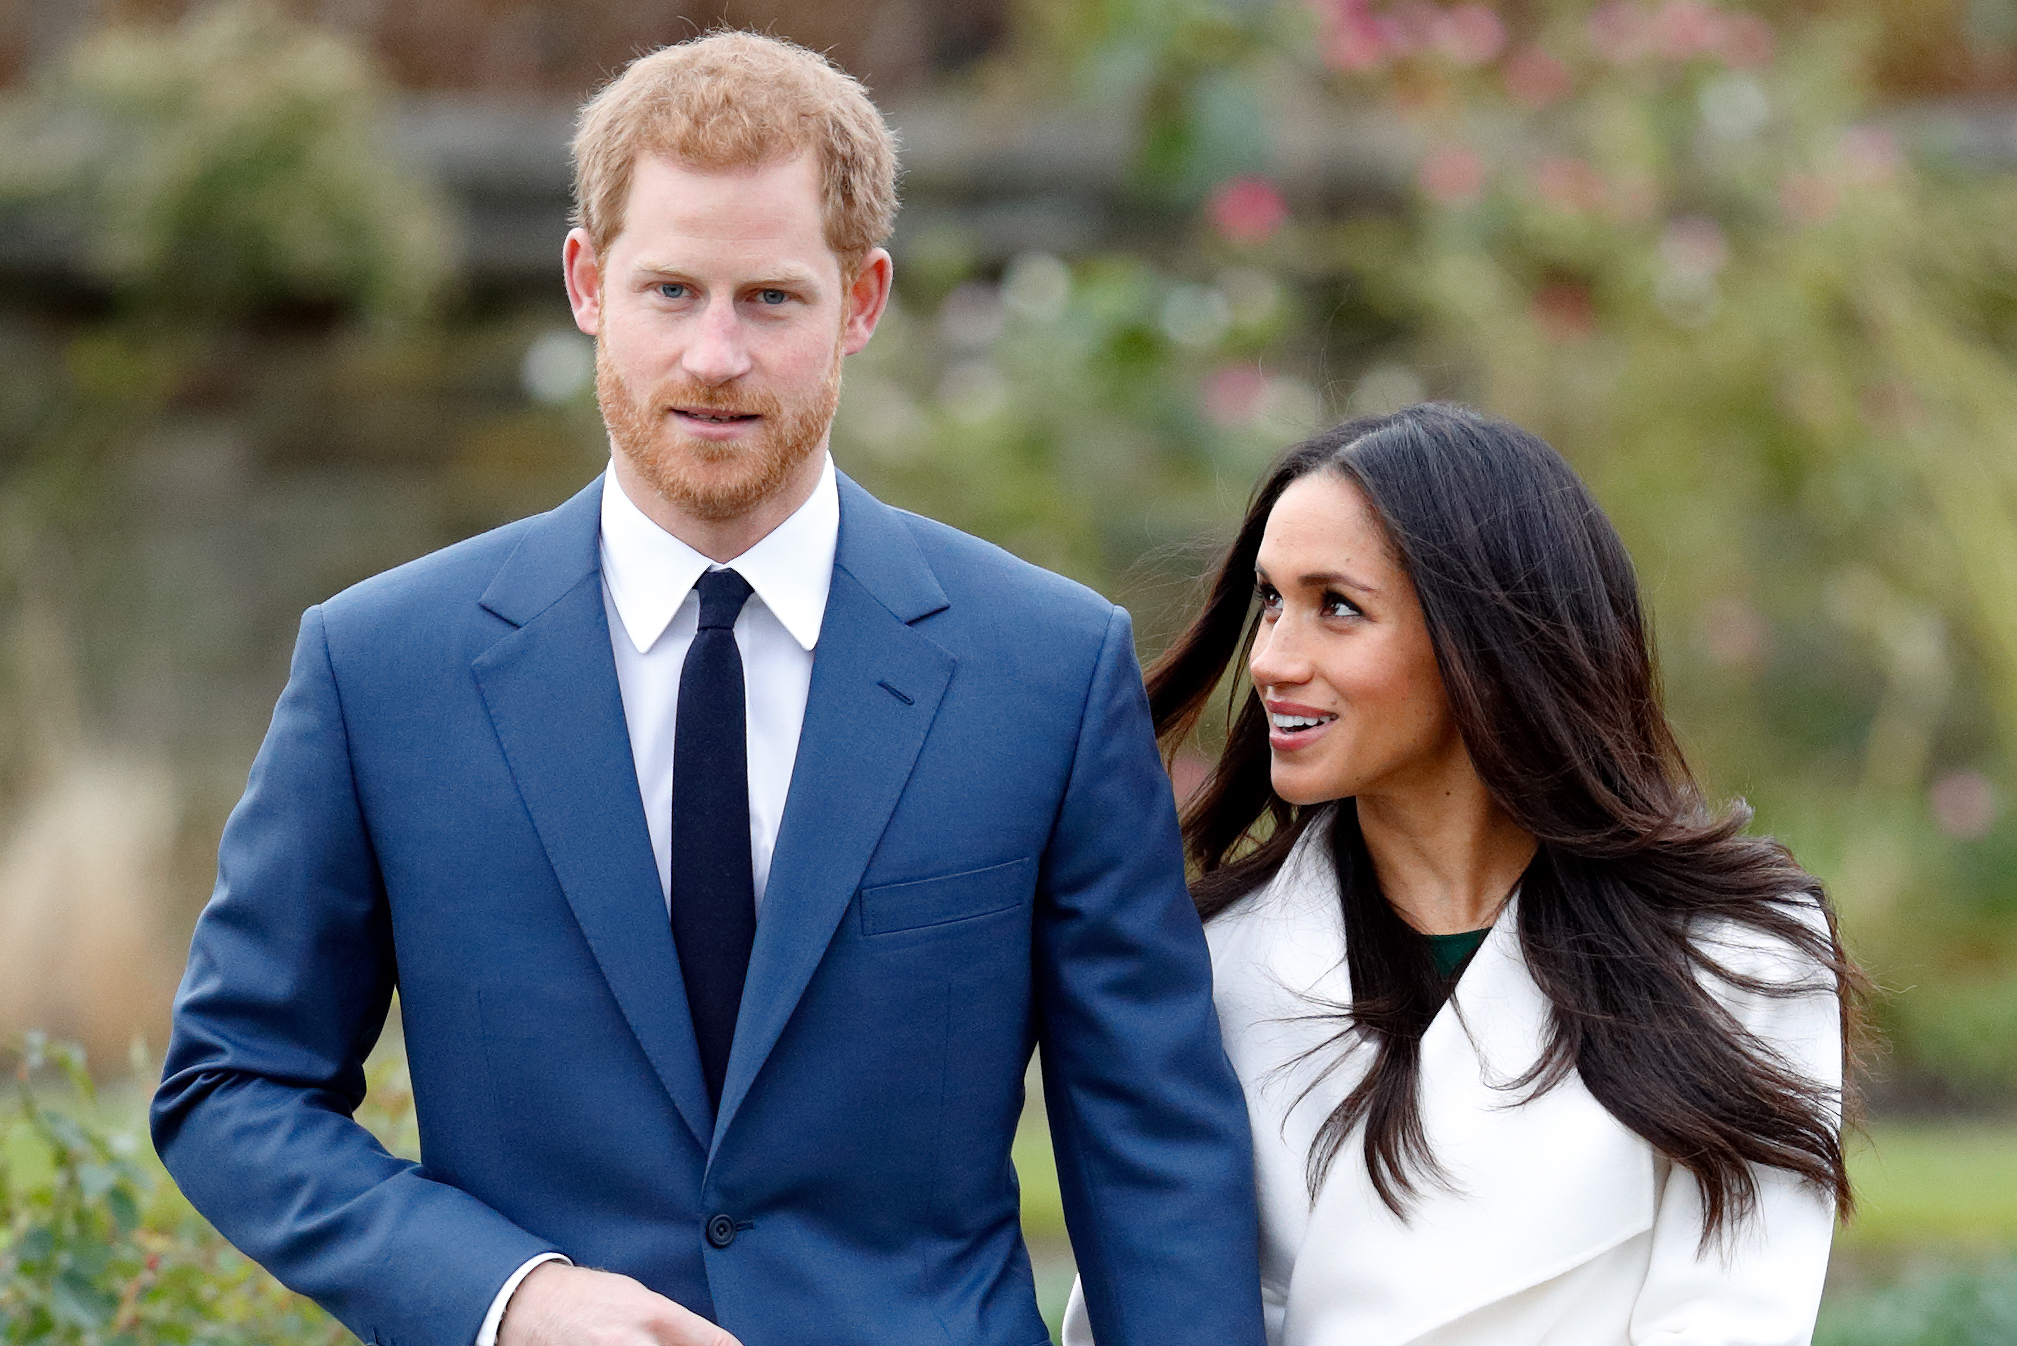 Prince Harry Wedding Date.Prince Harry And Meghan Markle S Wedding Date The Duo Reveals Details